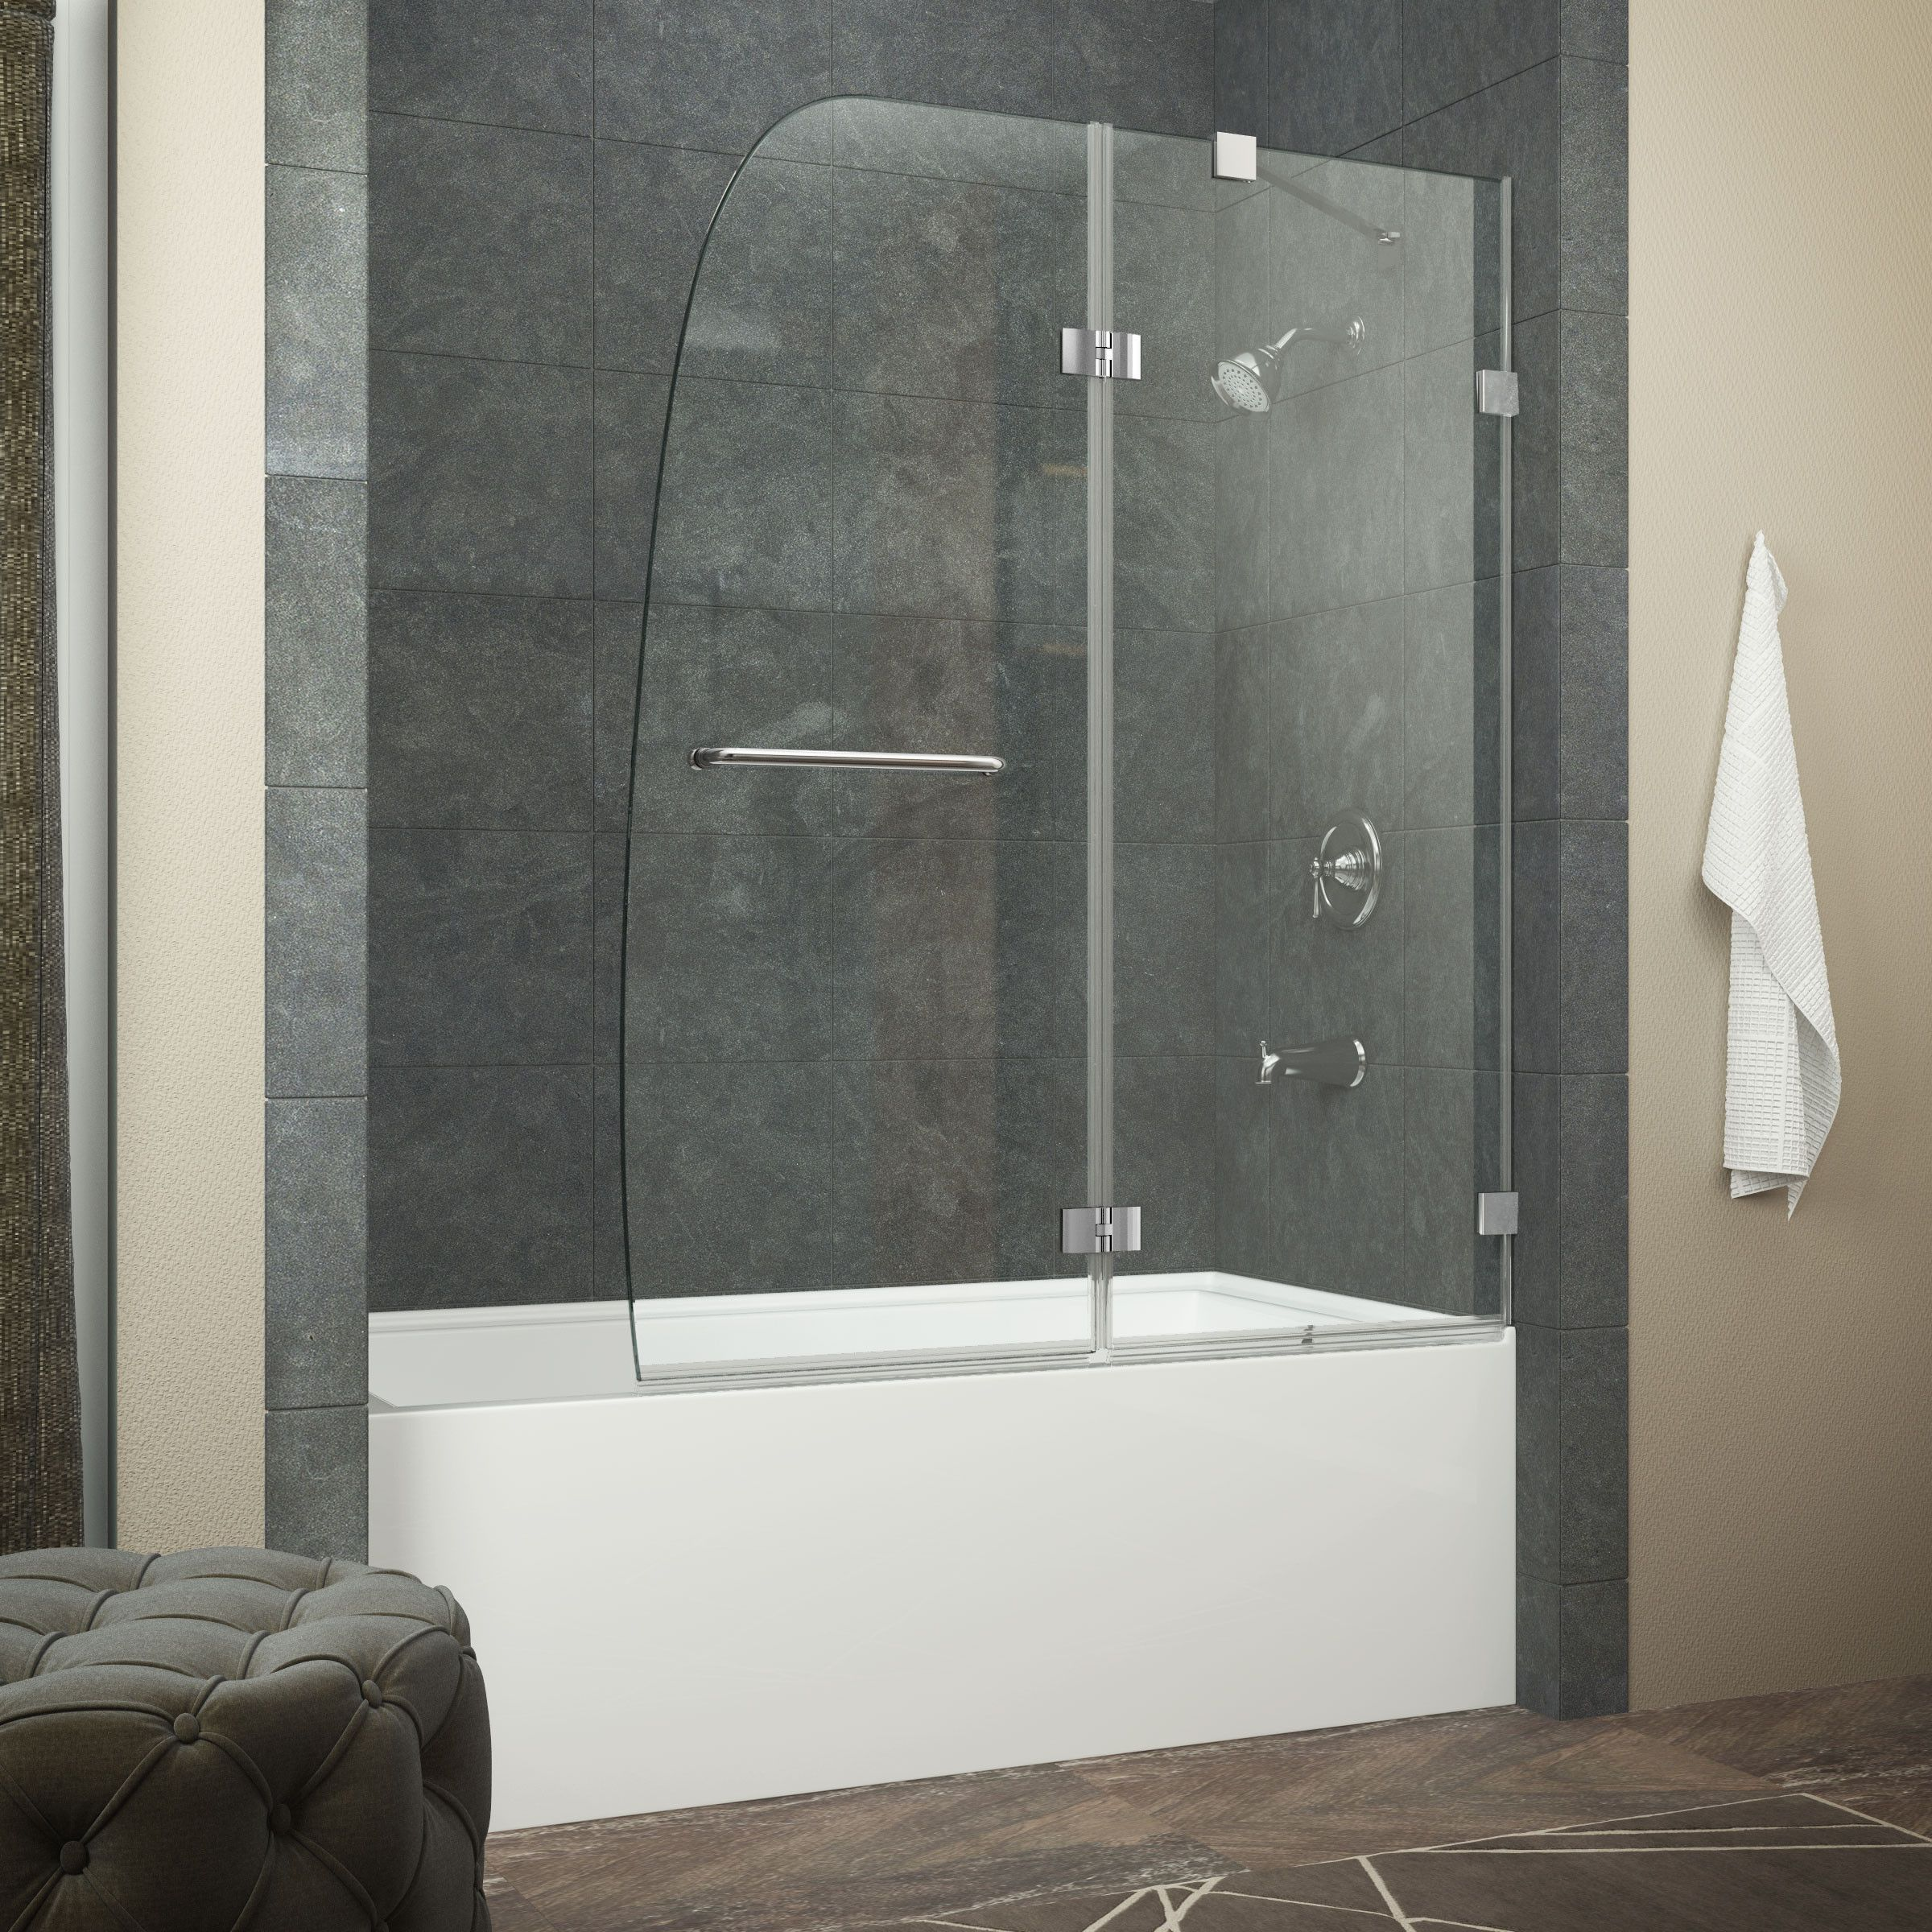 Anzzi Herald Series Sd Az11 01ch Shower Doors Tub Glass Door